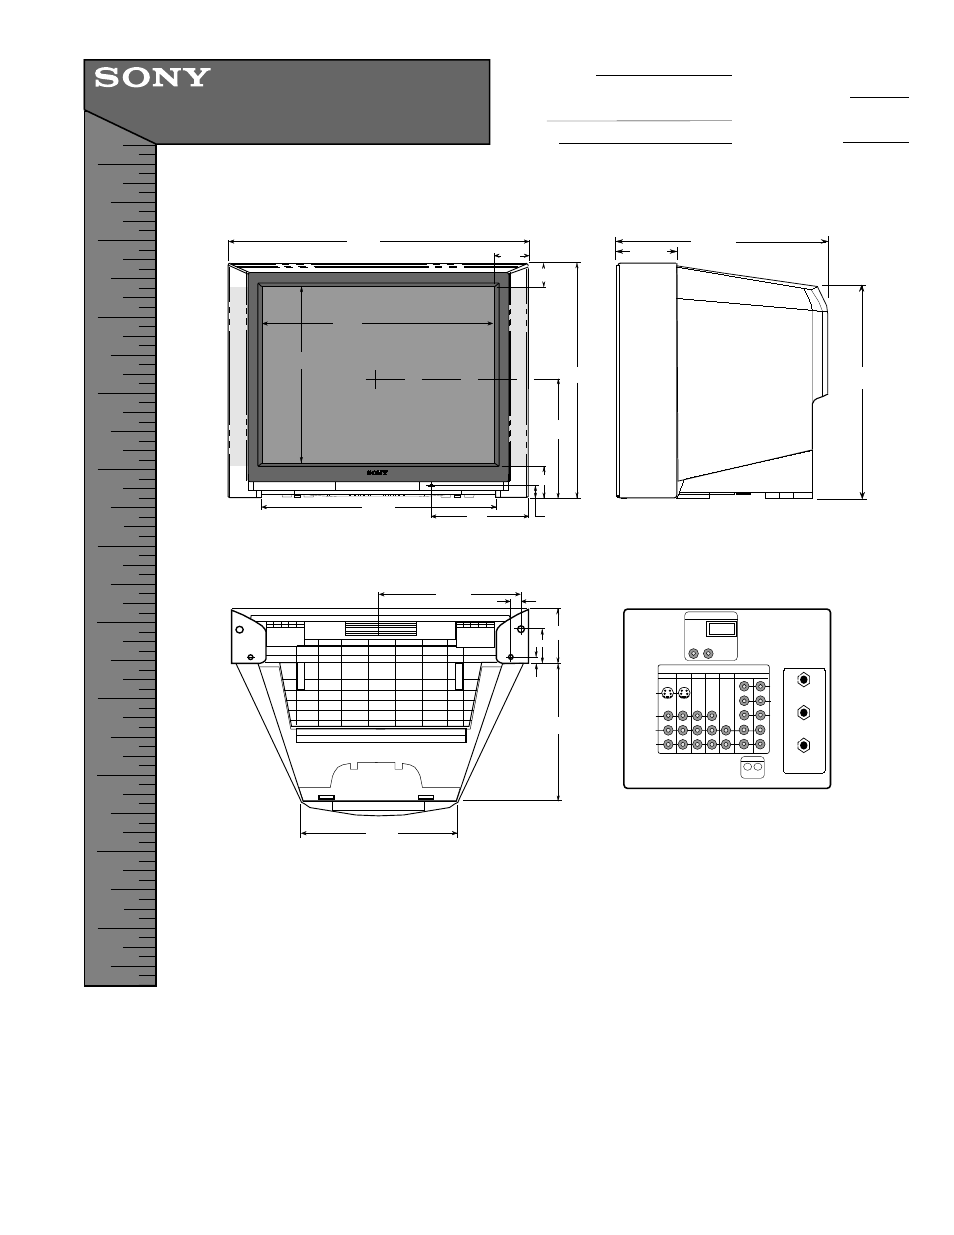 Sony KV-40XBR800 User Manual | 1 page